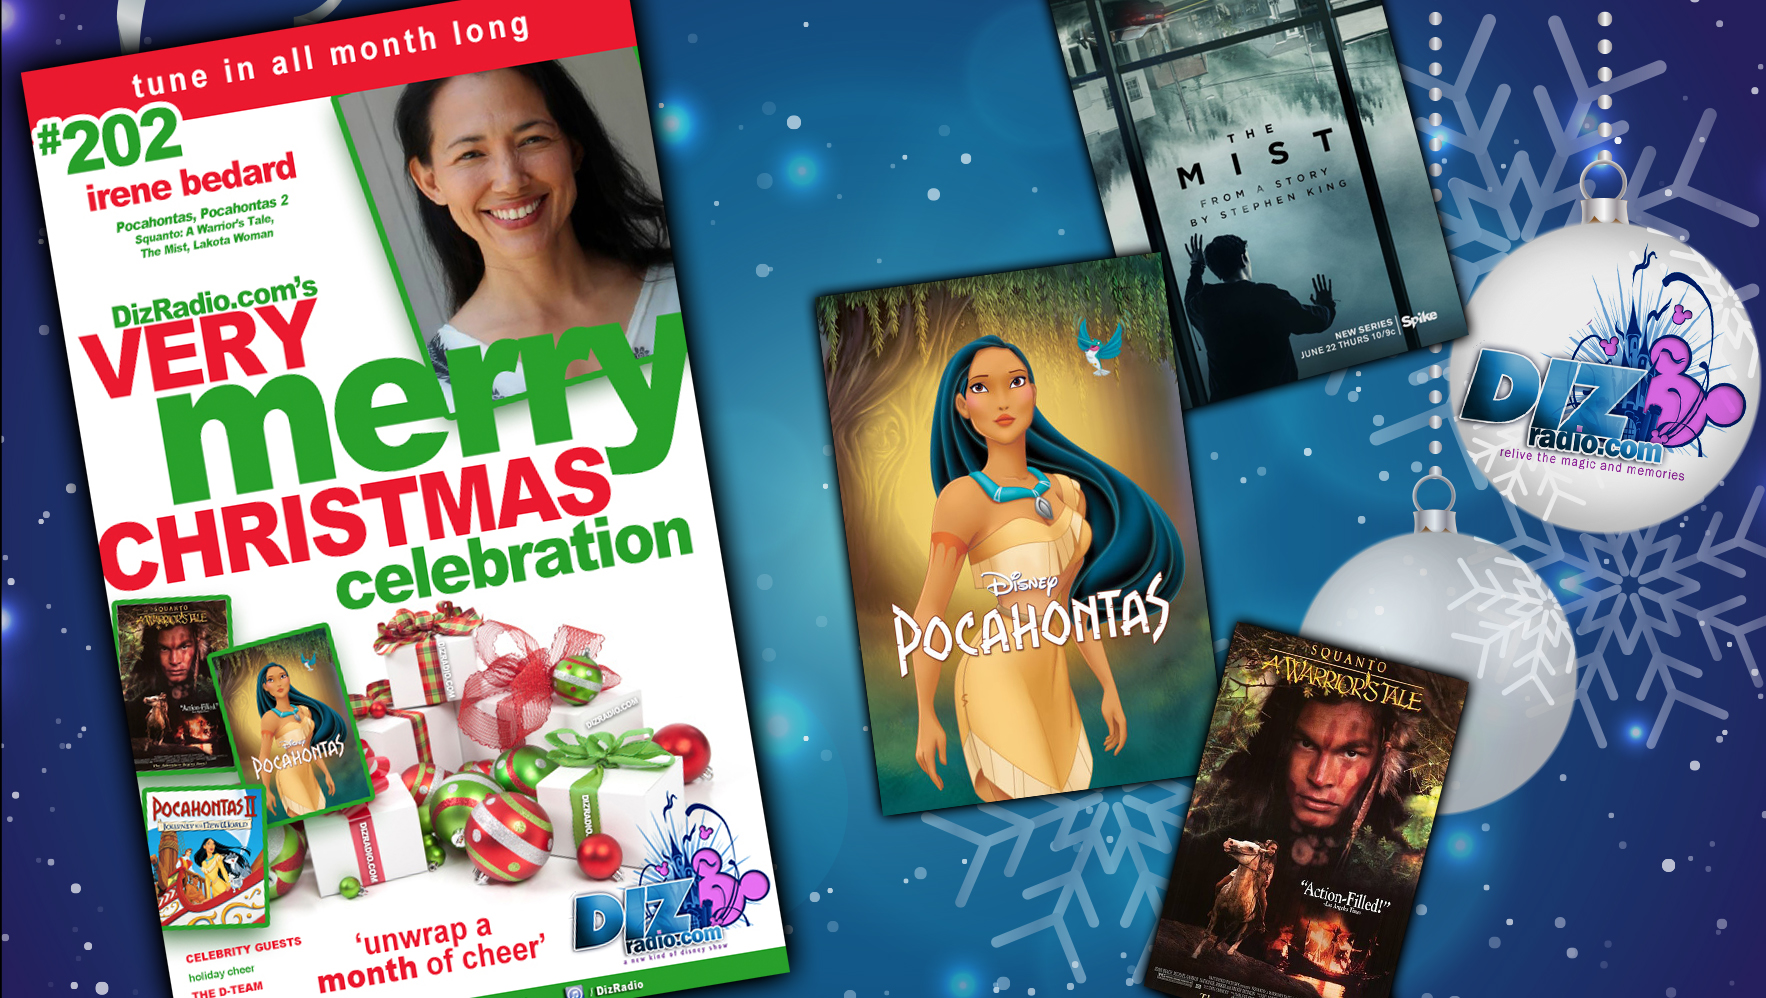 DisneyBlu's DizRadio Disney on Demand Podcast Show #202 w/ Special Guest IRENE BEDARD (Pocahontas, Pocahontas II, Squanto A Warrior's Tale, The Mist and more)